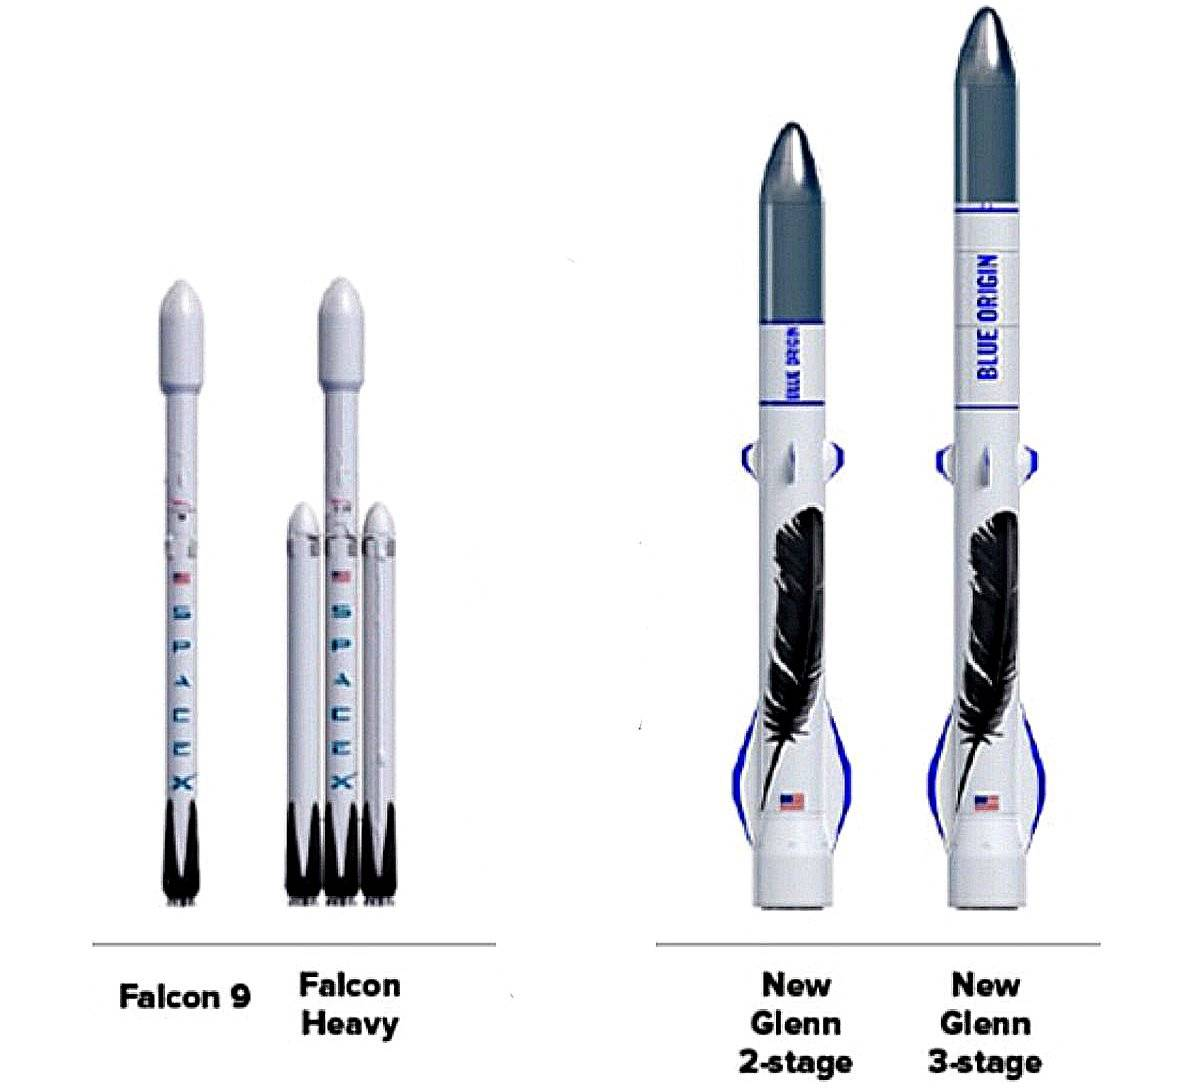 Falcon 9, Falcon Heavy и New Glenn